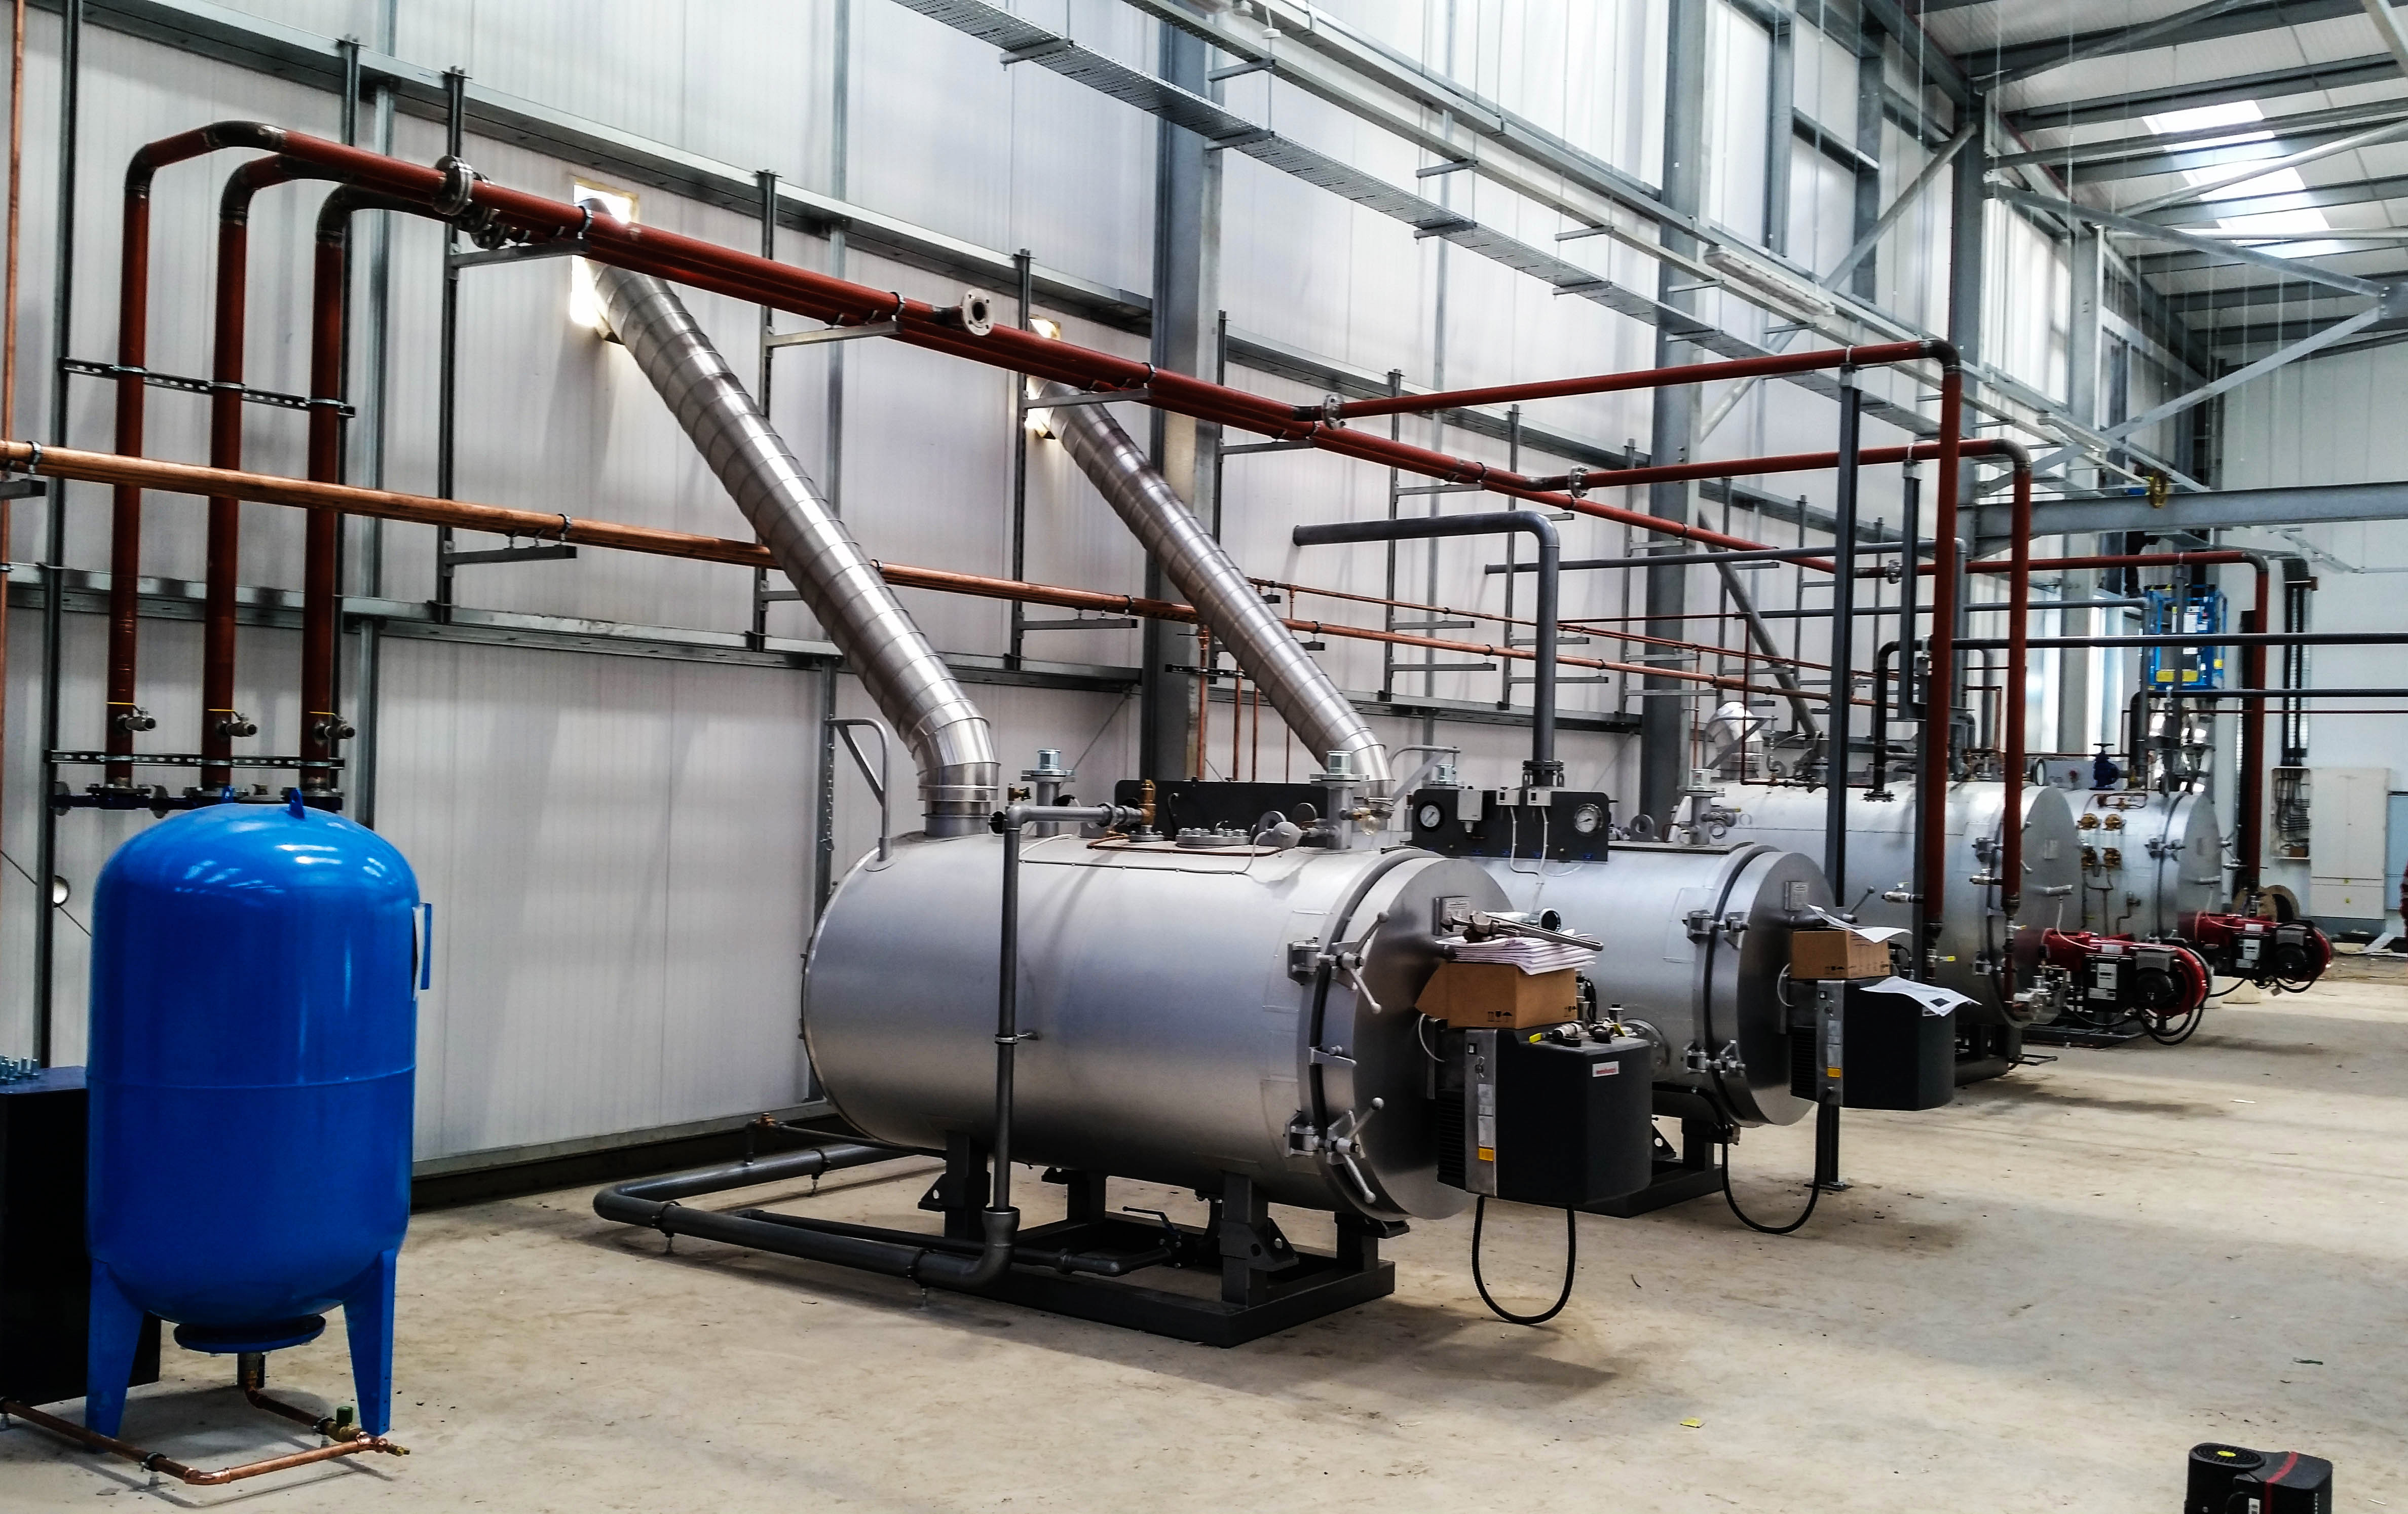 Work in progress photo of full boiler house installation. Scope of works for design, manufacture, installation and commissioning of 2 x Byworth Fellsman 500kW hot water boilers & 2 x Byworth MX1000 (1000kg/hr) steam boilers, hotwell, blowdown vessel, steam distribution header & all associated interconnecting pipework. All manufactured from start to finish in UK